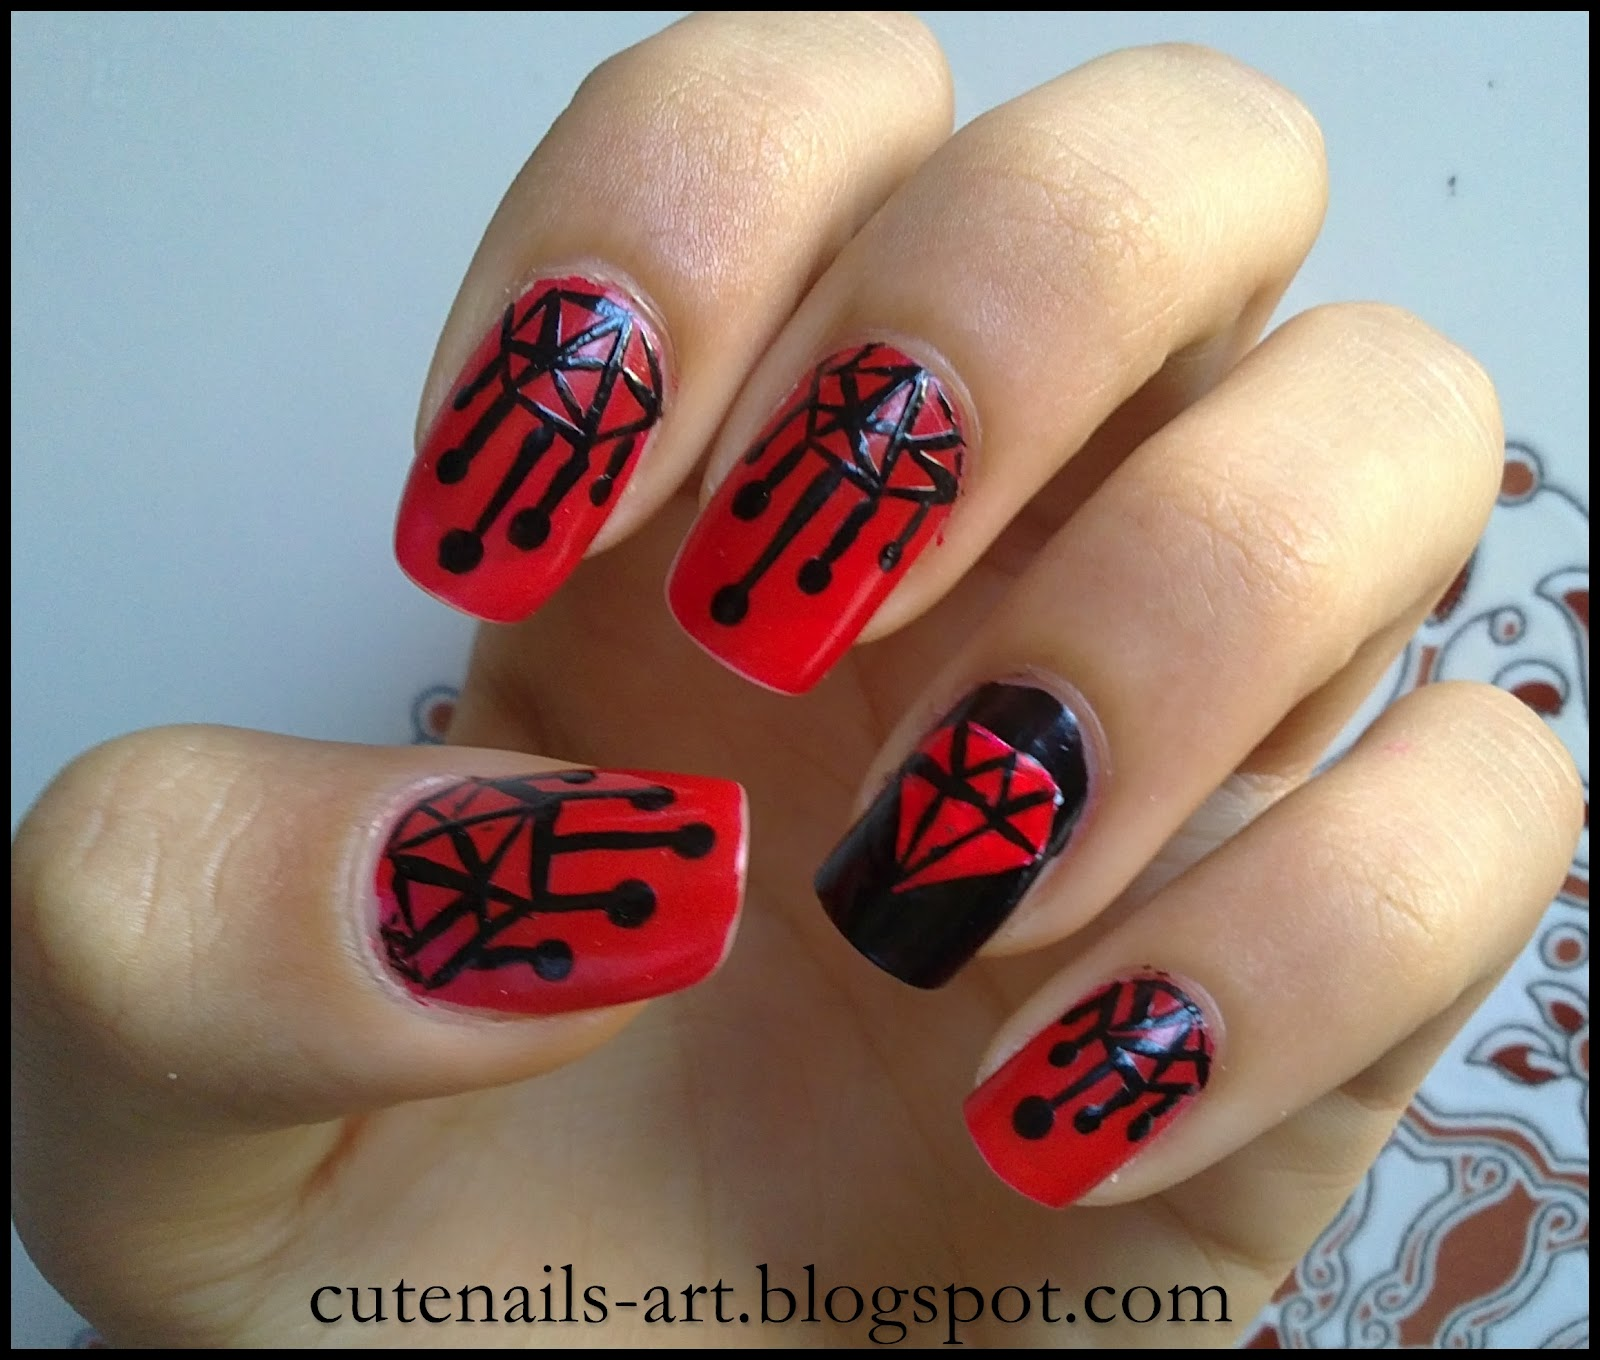 name this nail art as a black chandeliers red diamond nail art design